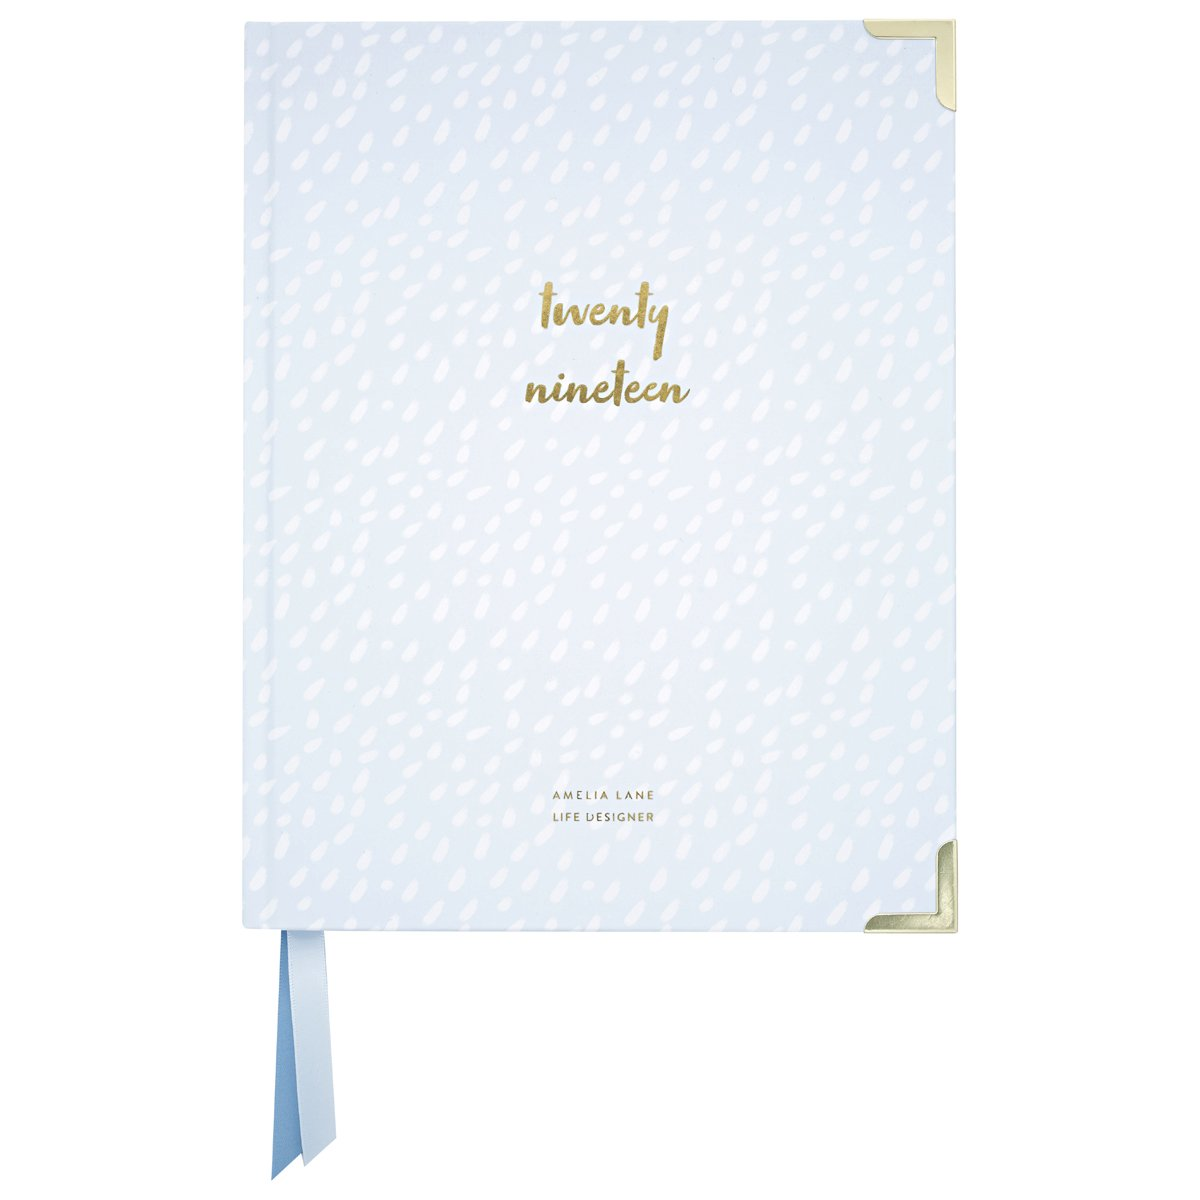 2019 Amelia Lane Life Designer, Desktop Daily (Rain Splash)